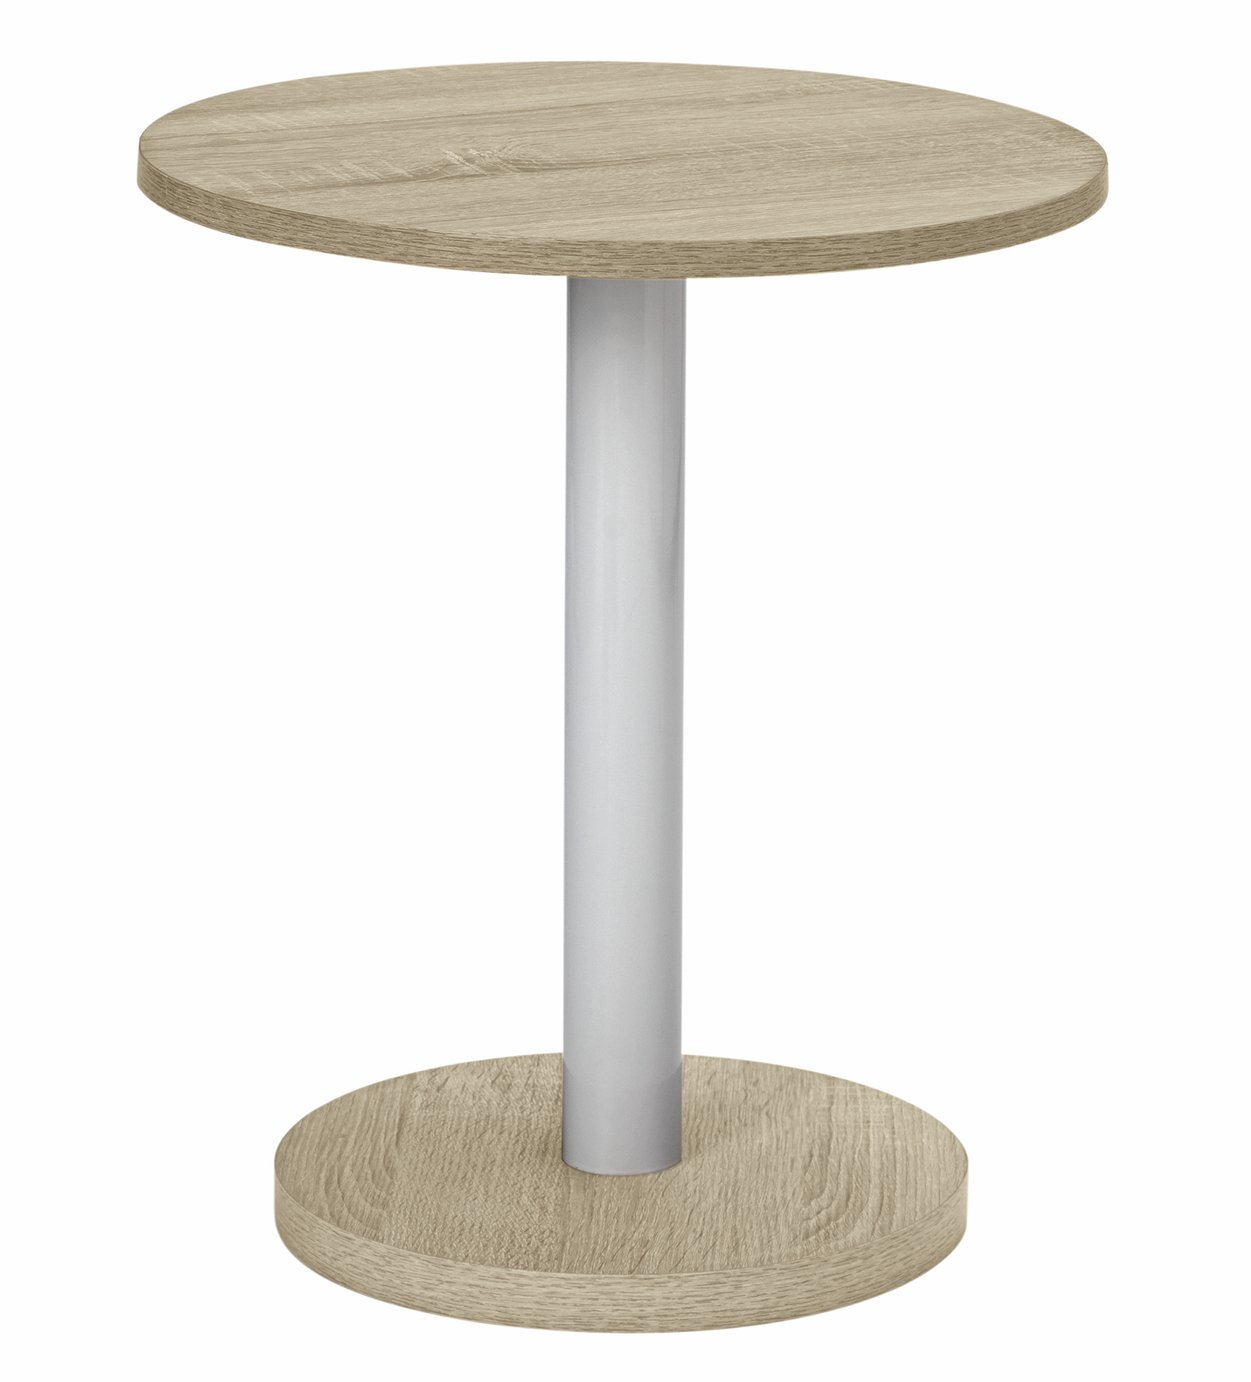 buy home small lamp side table - oak at argos.co.uk - your online